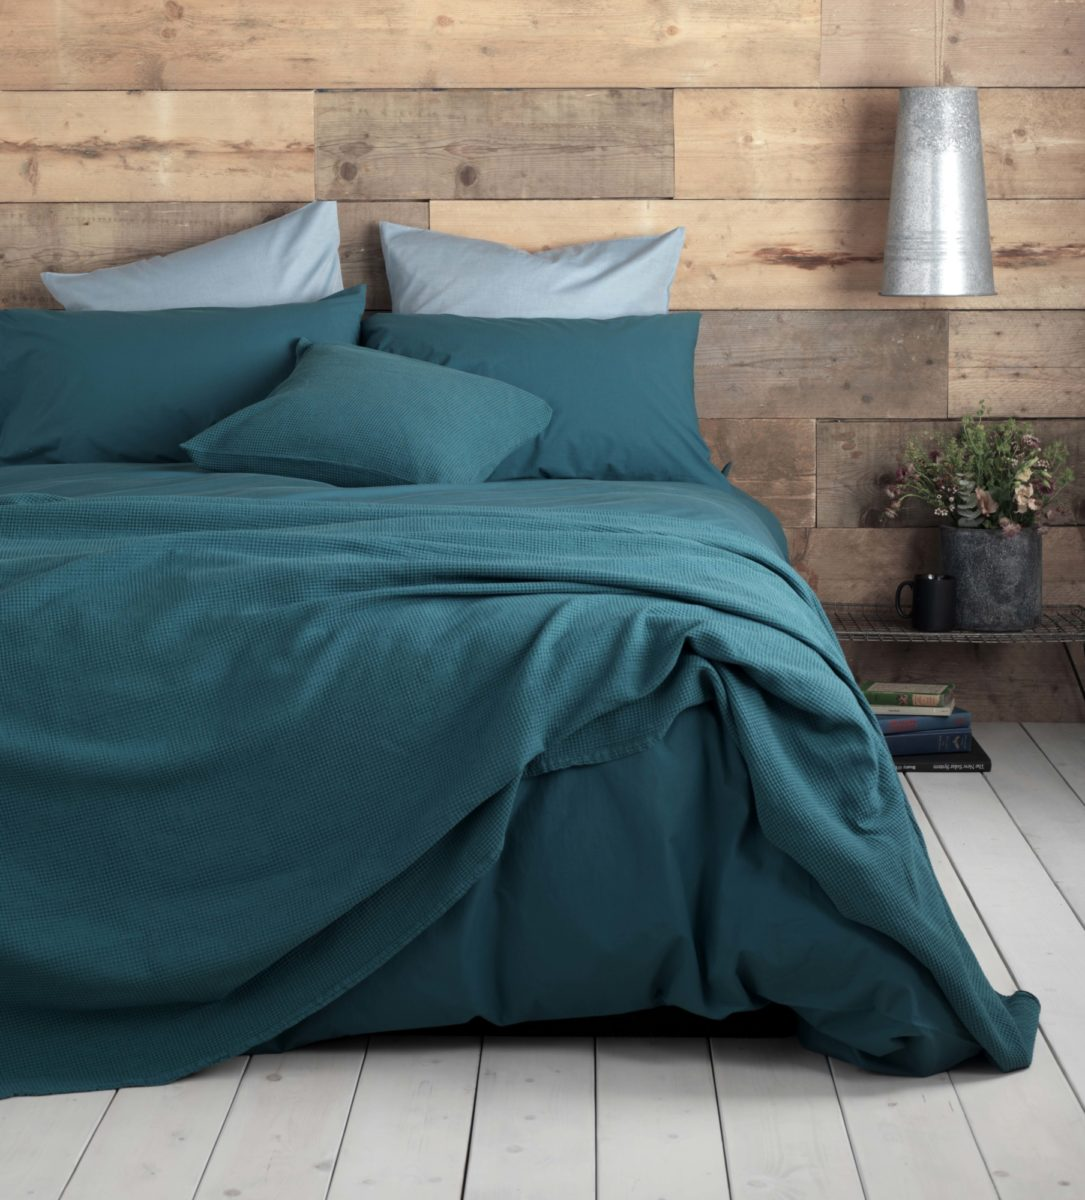 Washed Cotton Percale Teal Duvet Covers 200 Thread Count Secret